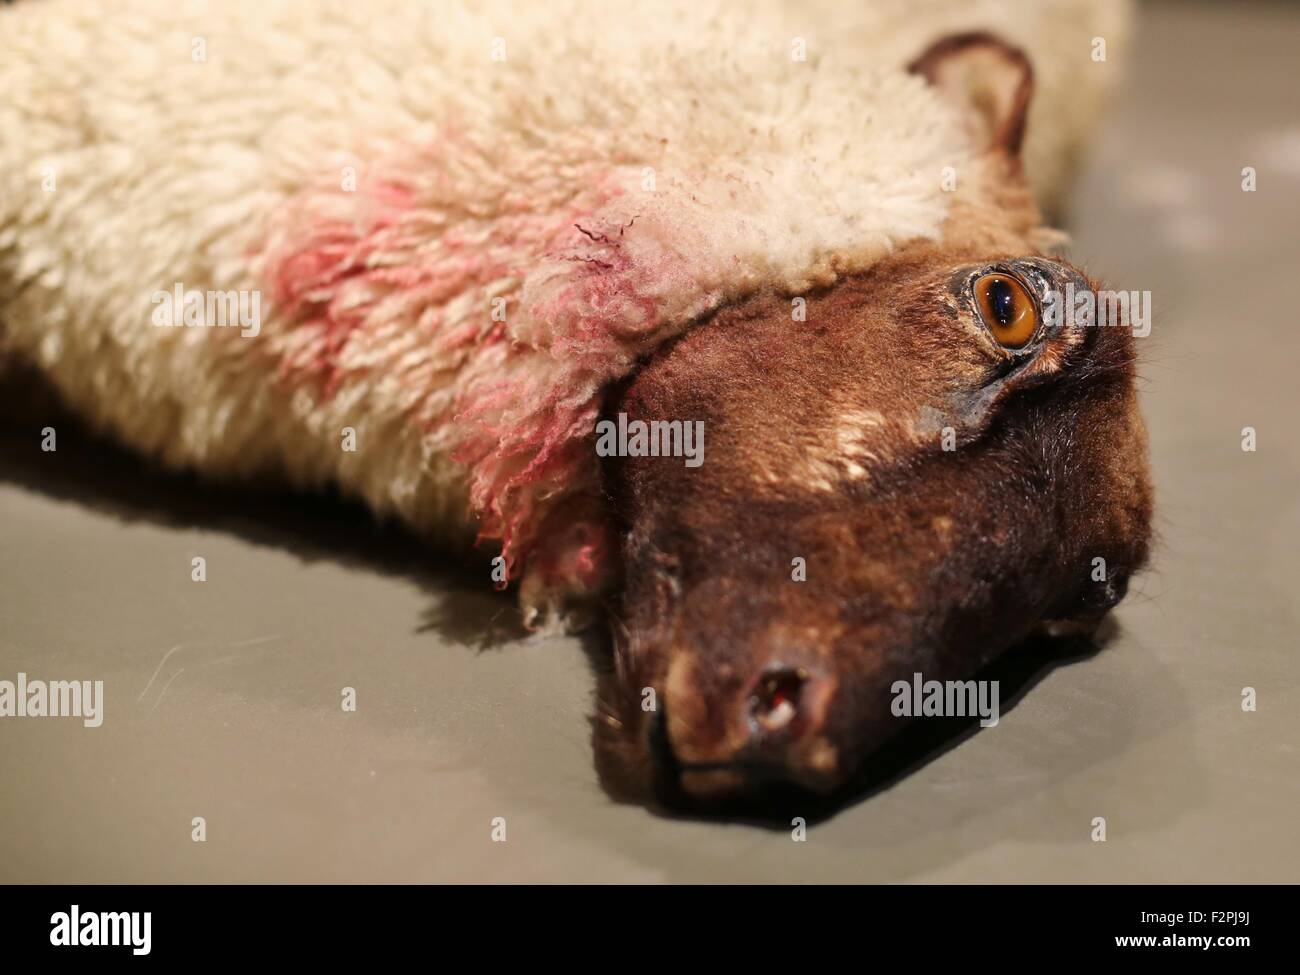 A slaughtered sheep, part of a museum display. - Stock Image